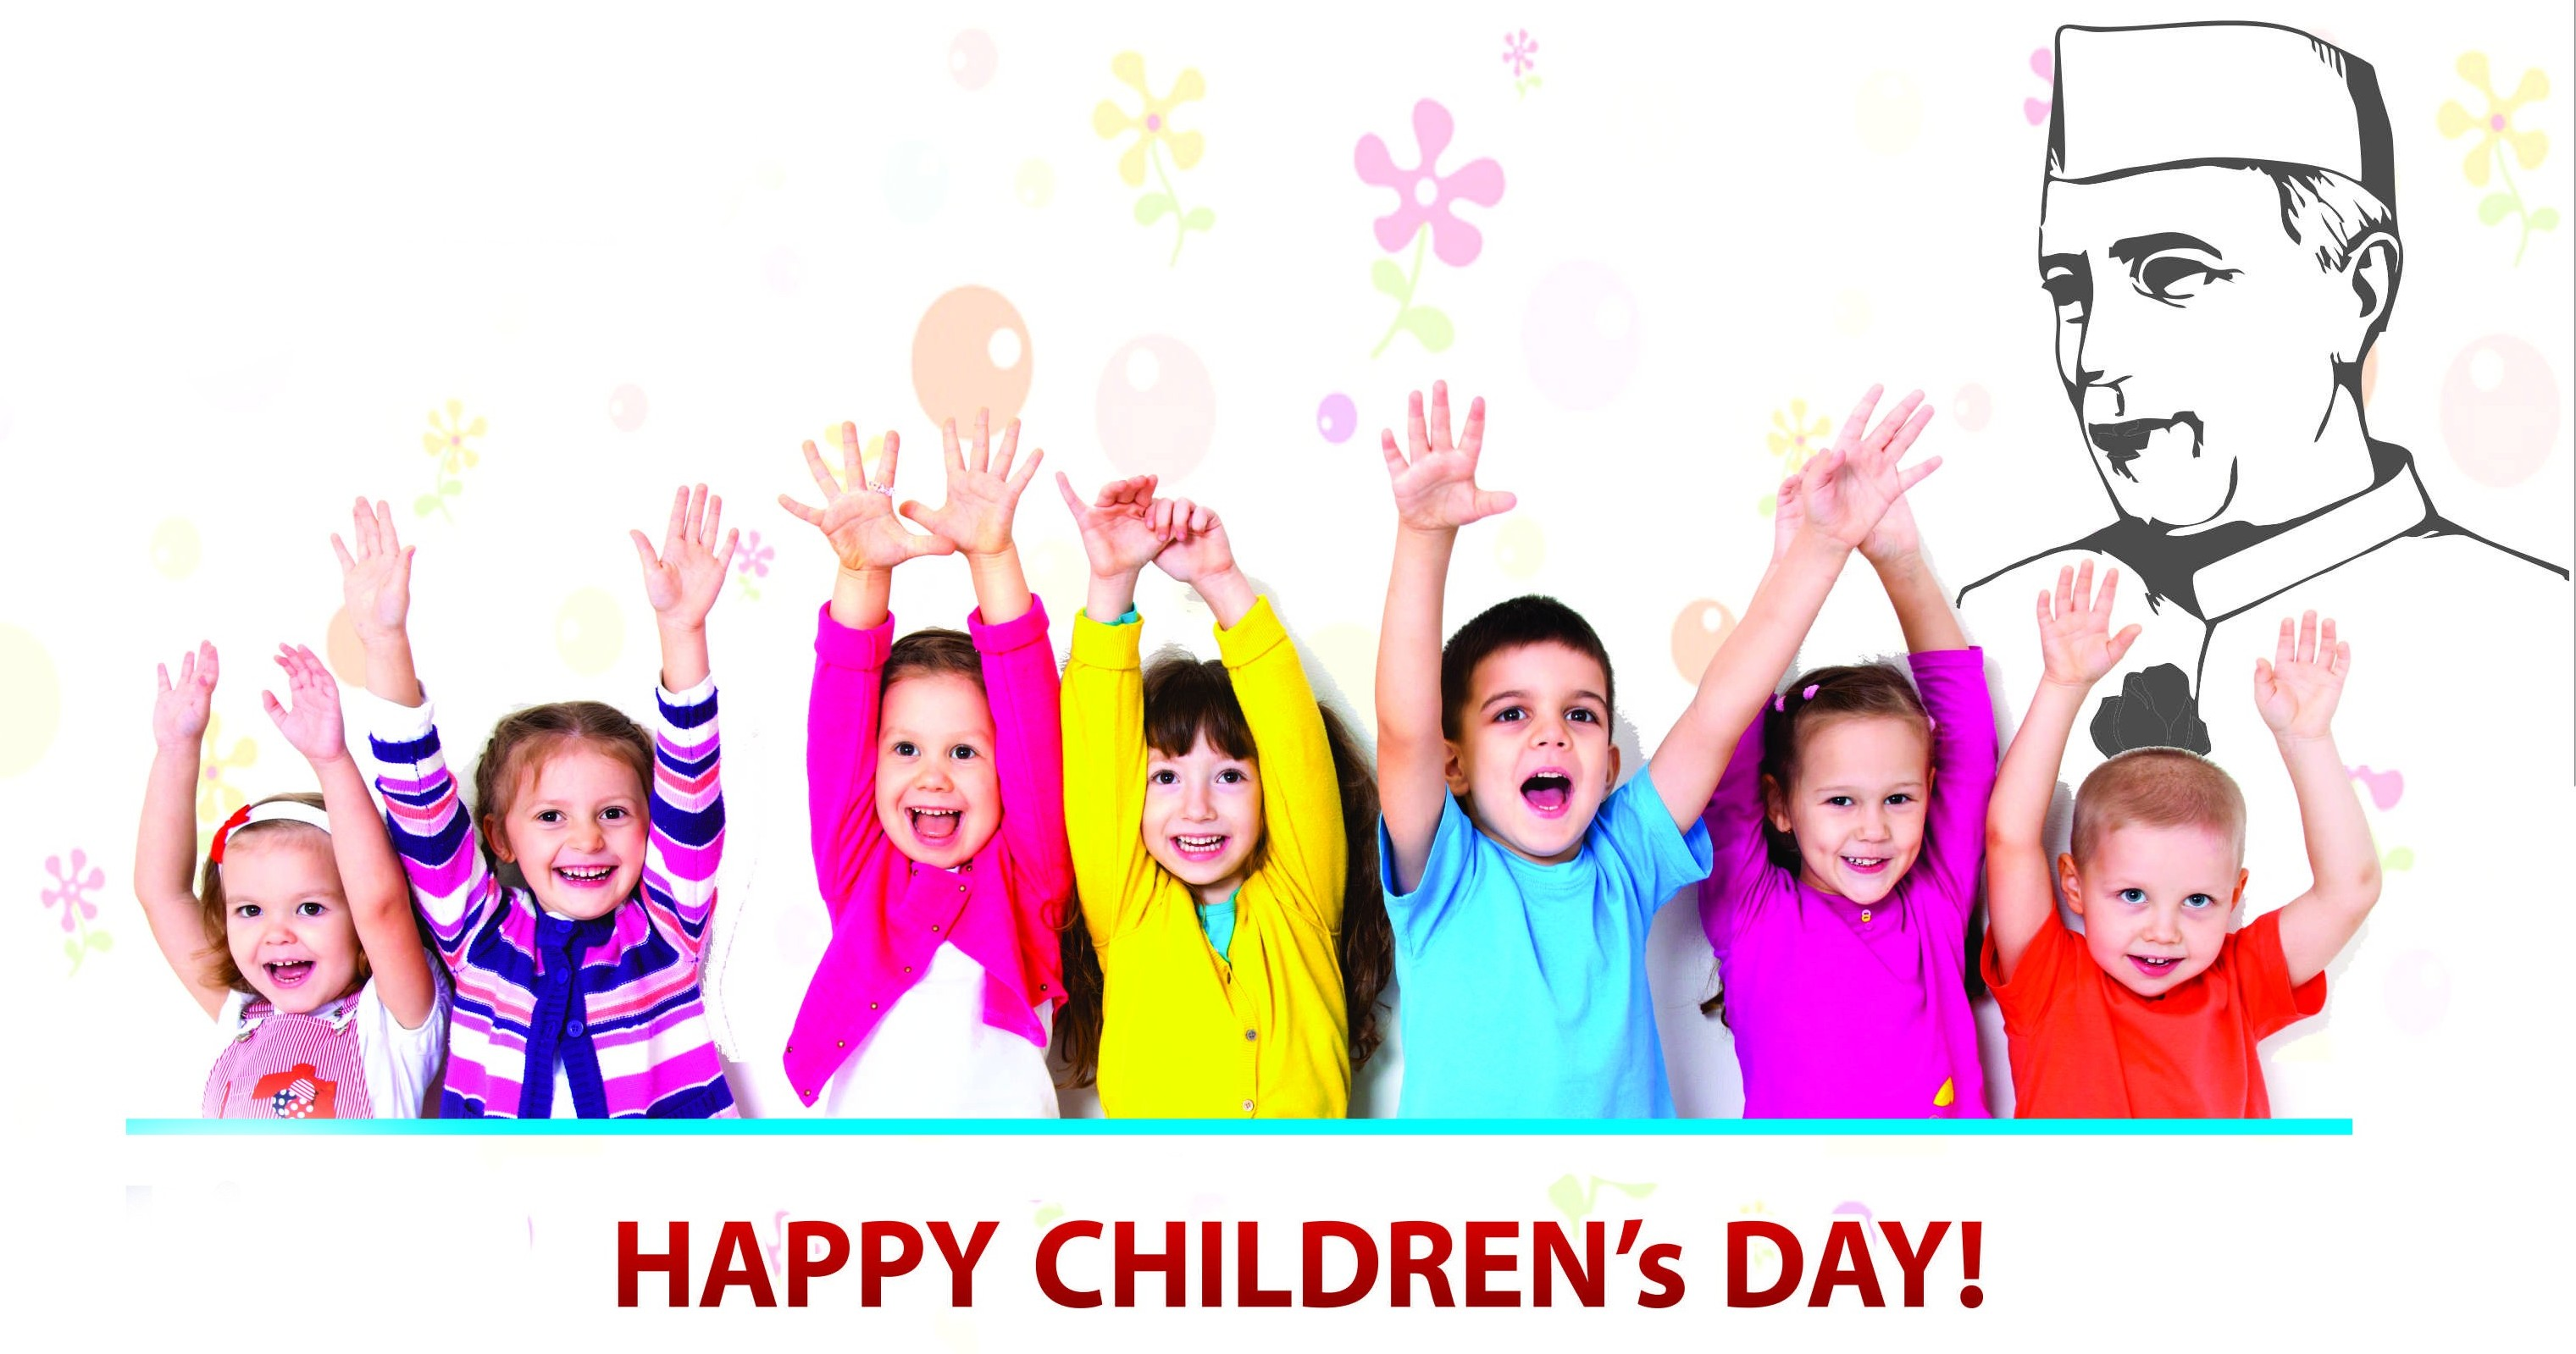 essay on childrens day in english for kids The 14th of november each year is celebrated as children's day all over india the birthday of pandit jawahar lai nehru, the first prime minister of free india, falls on that day.